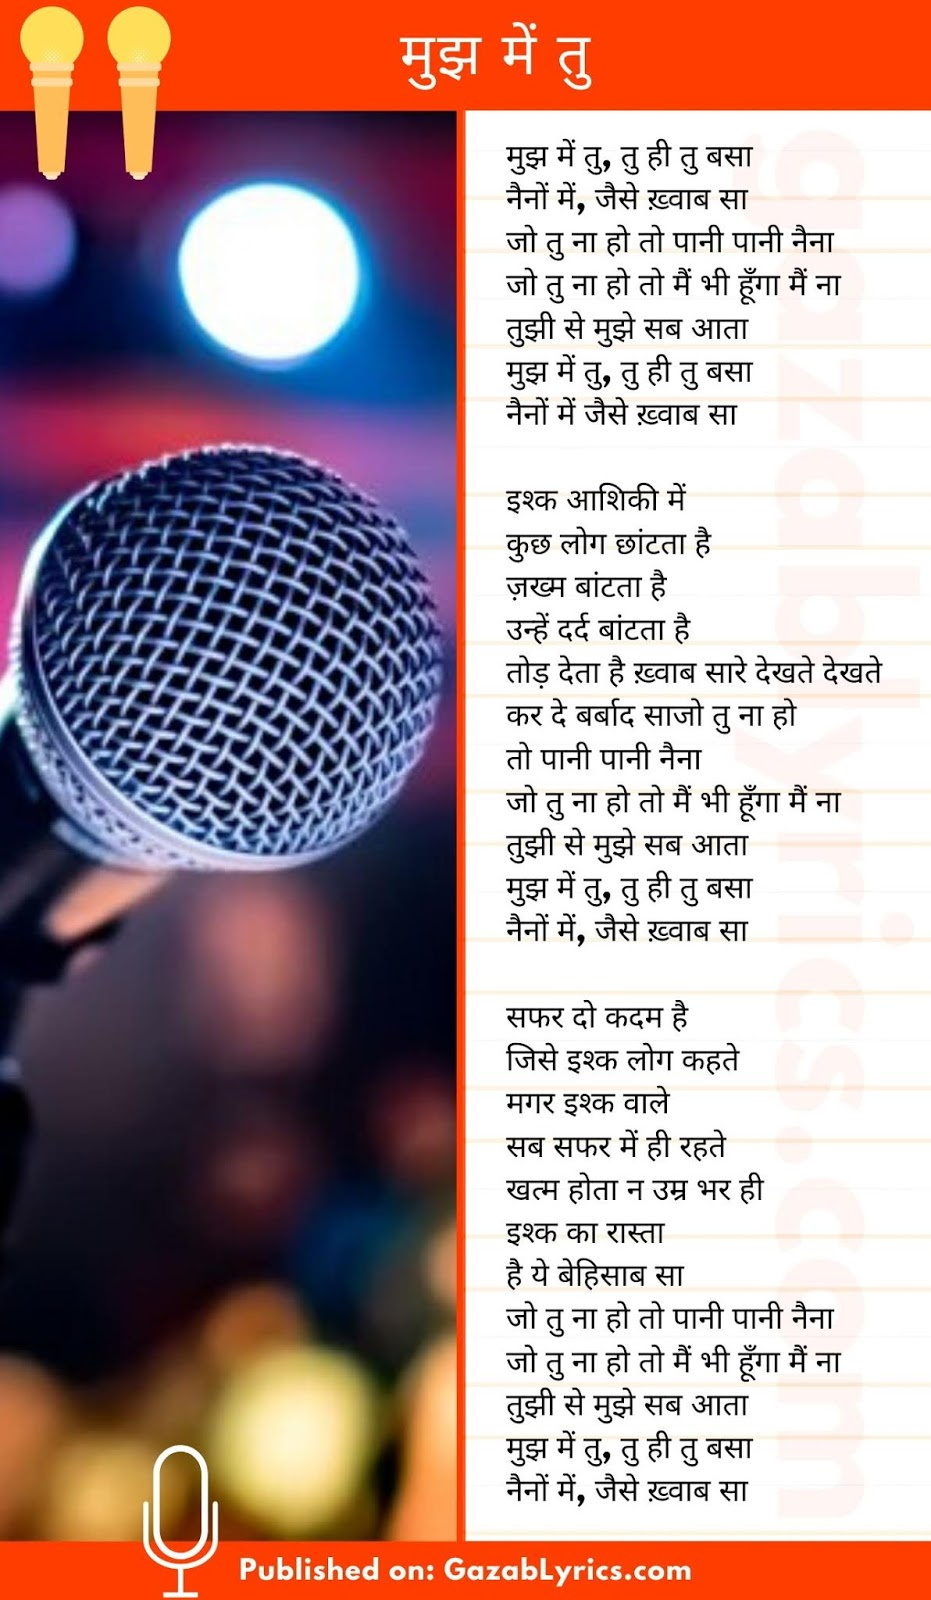 Mujh Mein Tu song lyrics image